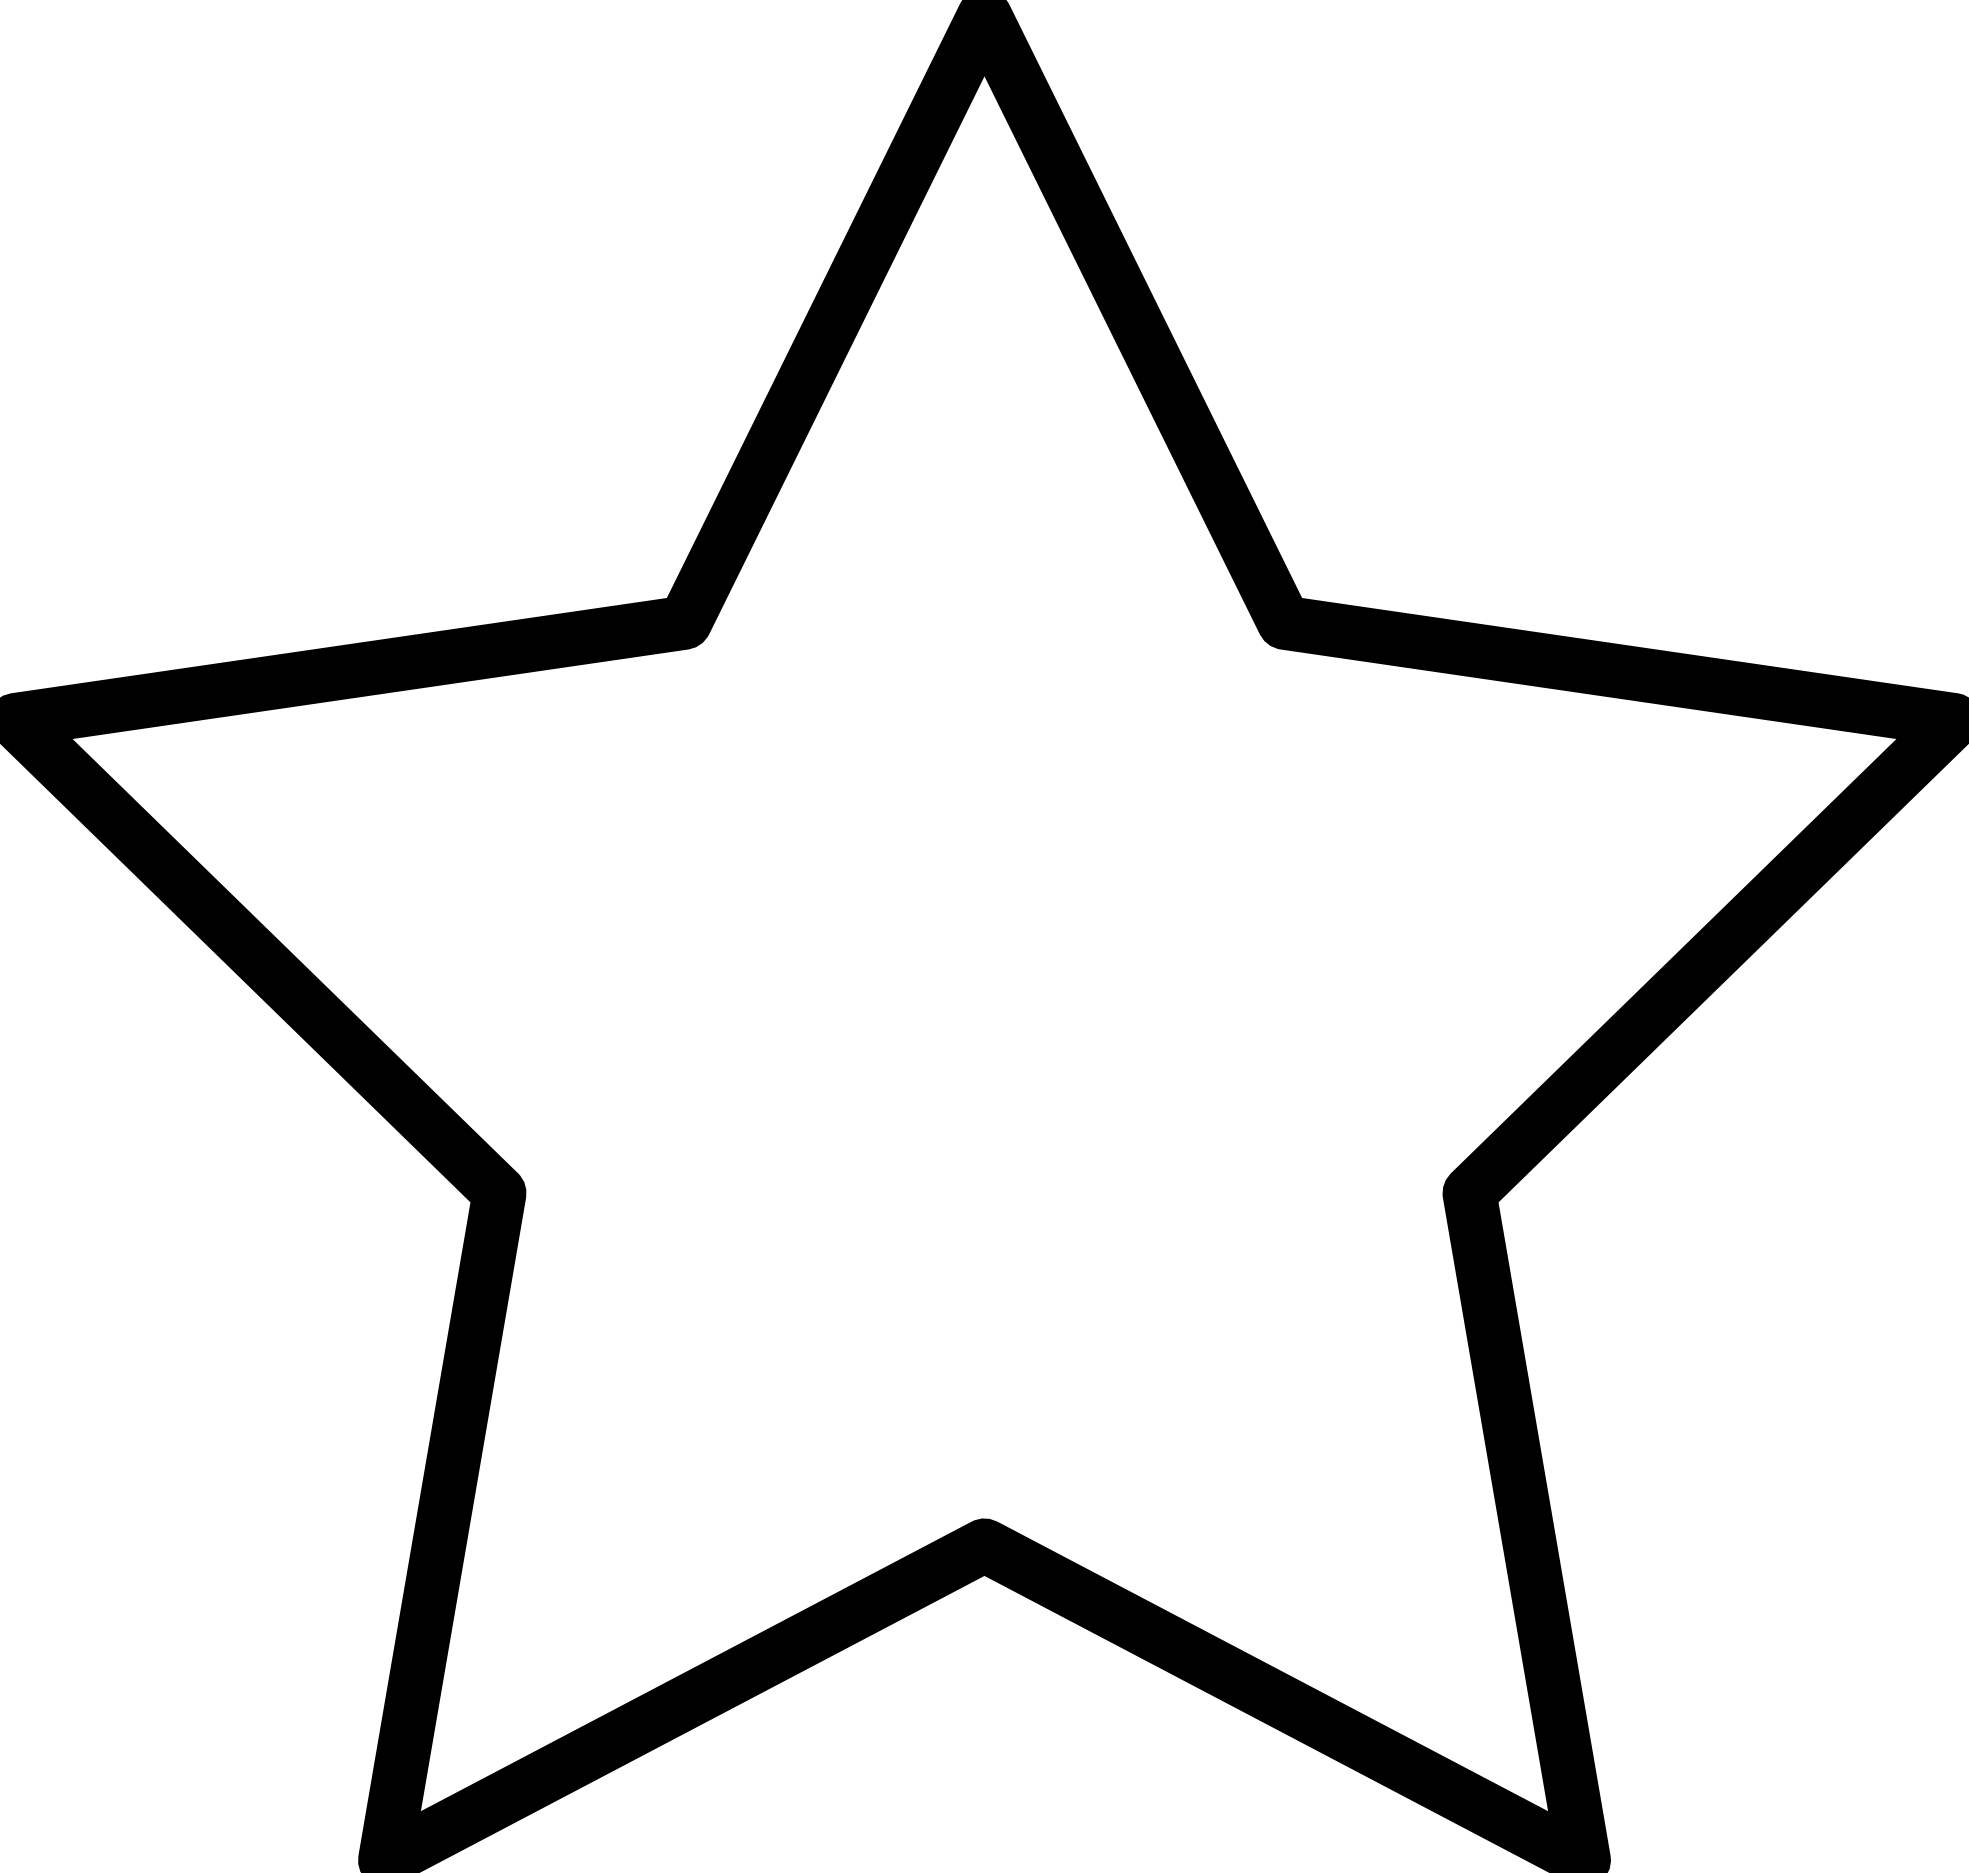 star clipart black and white 4cbkbedei png 1969 1873 kids yarn rh pinterest com free star clipart for teachers free star clipart border